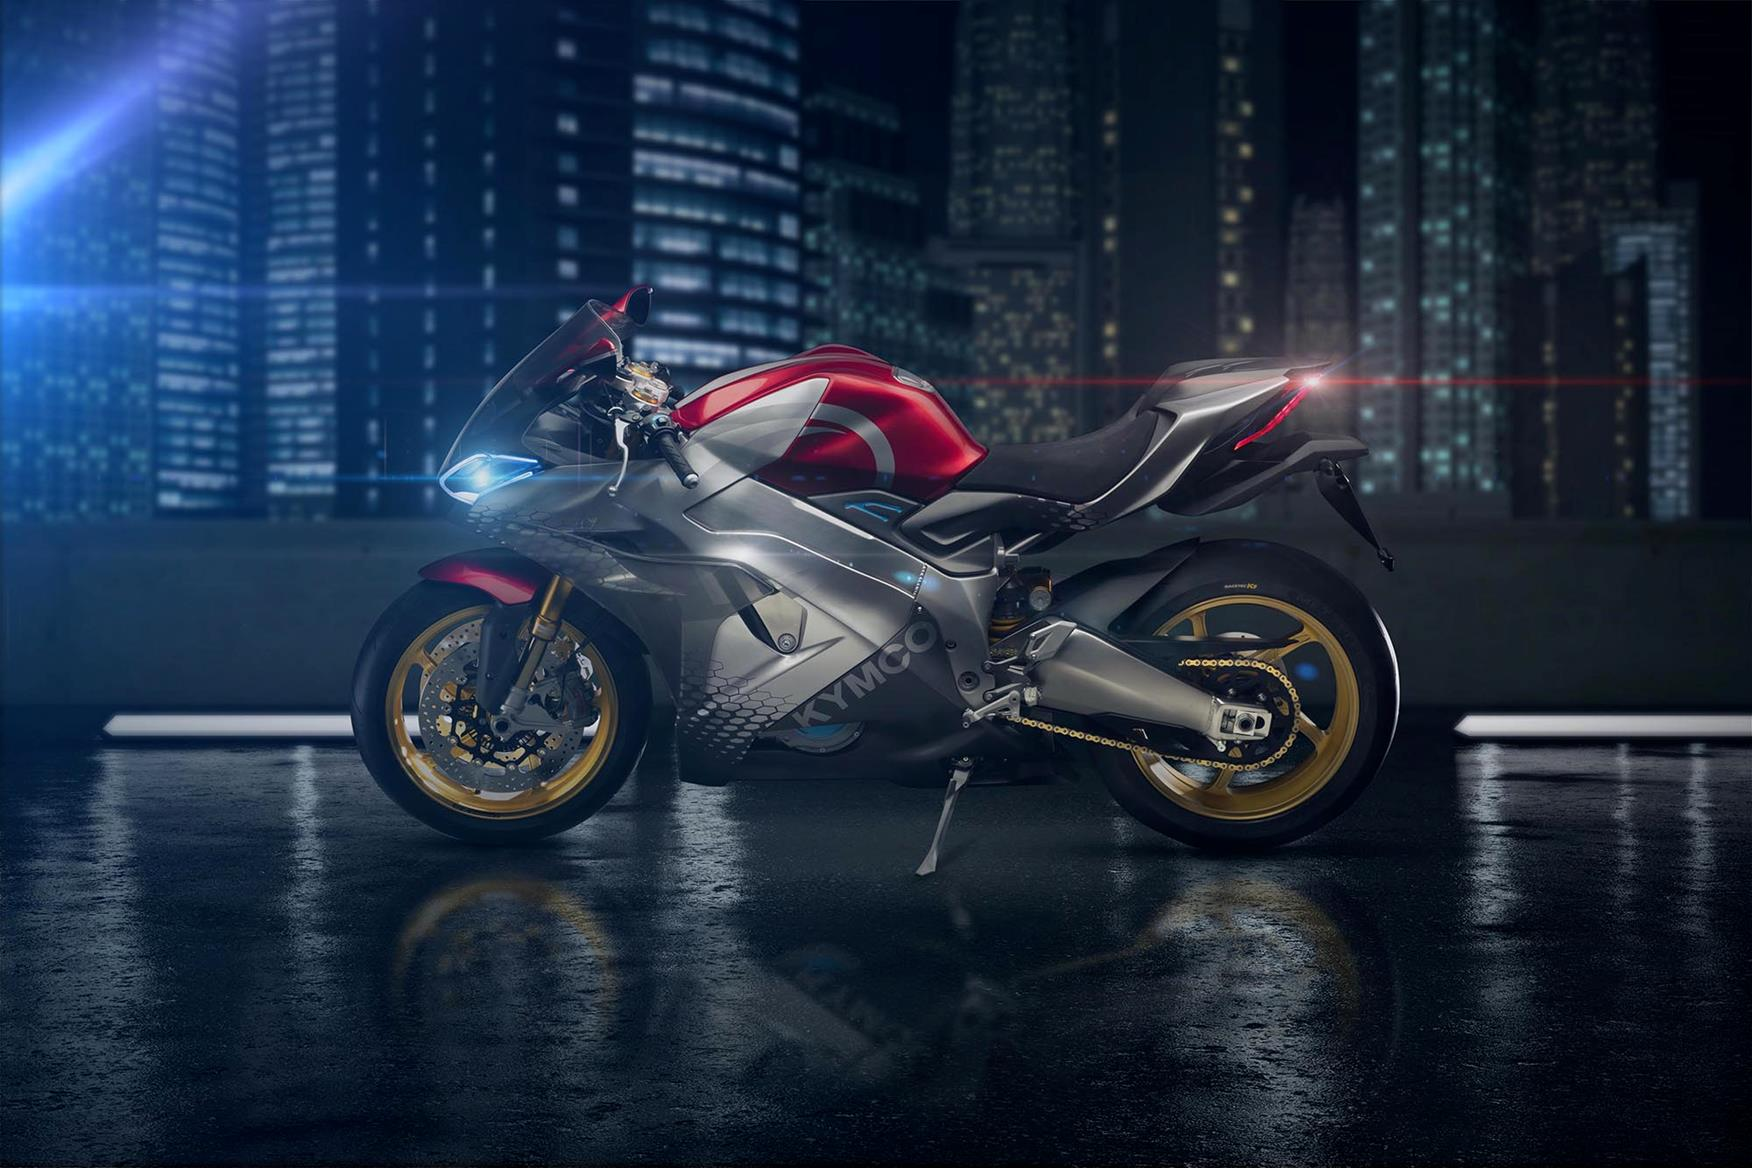 Kymco unveil their first electric superbike